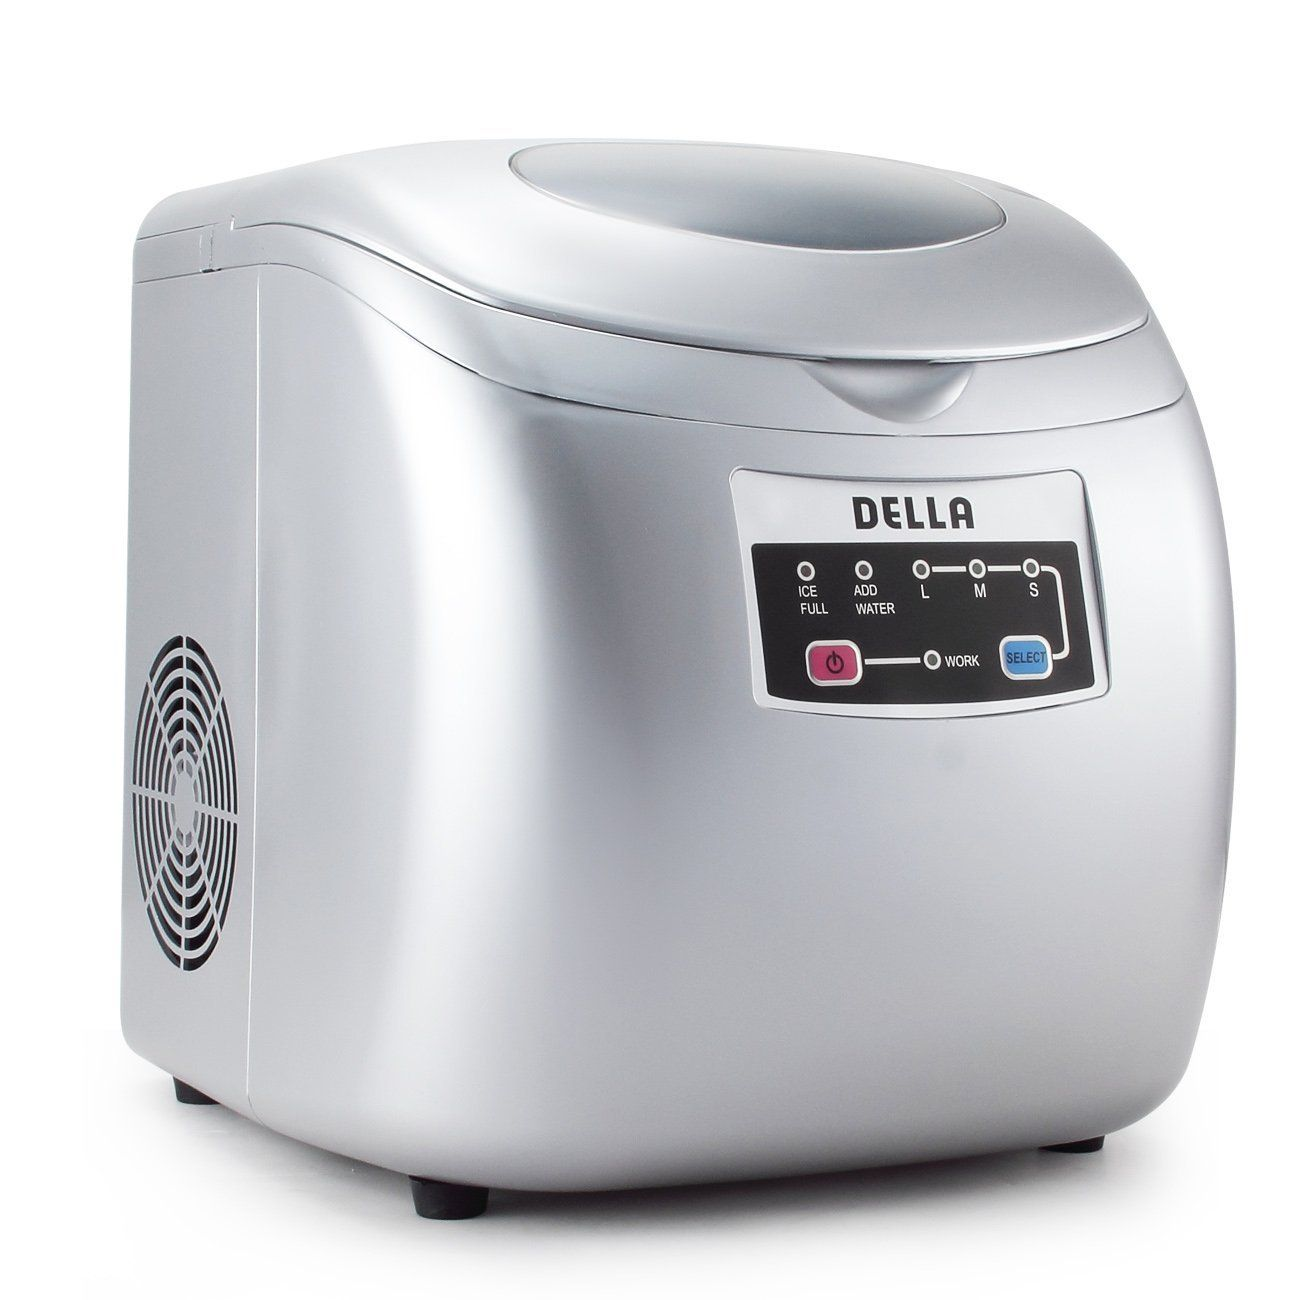 Della 048 Gm 48221 Portable Ice Maker Easy Touch Buttons 26lb Per Day Countertop Machine 3 Selectable Cube Sizes Portable Ice Maker Ice Maker Machine Ice Maker